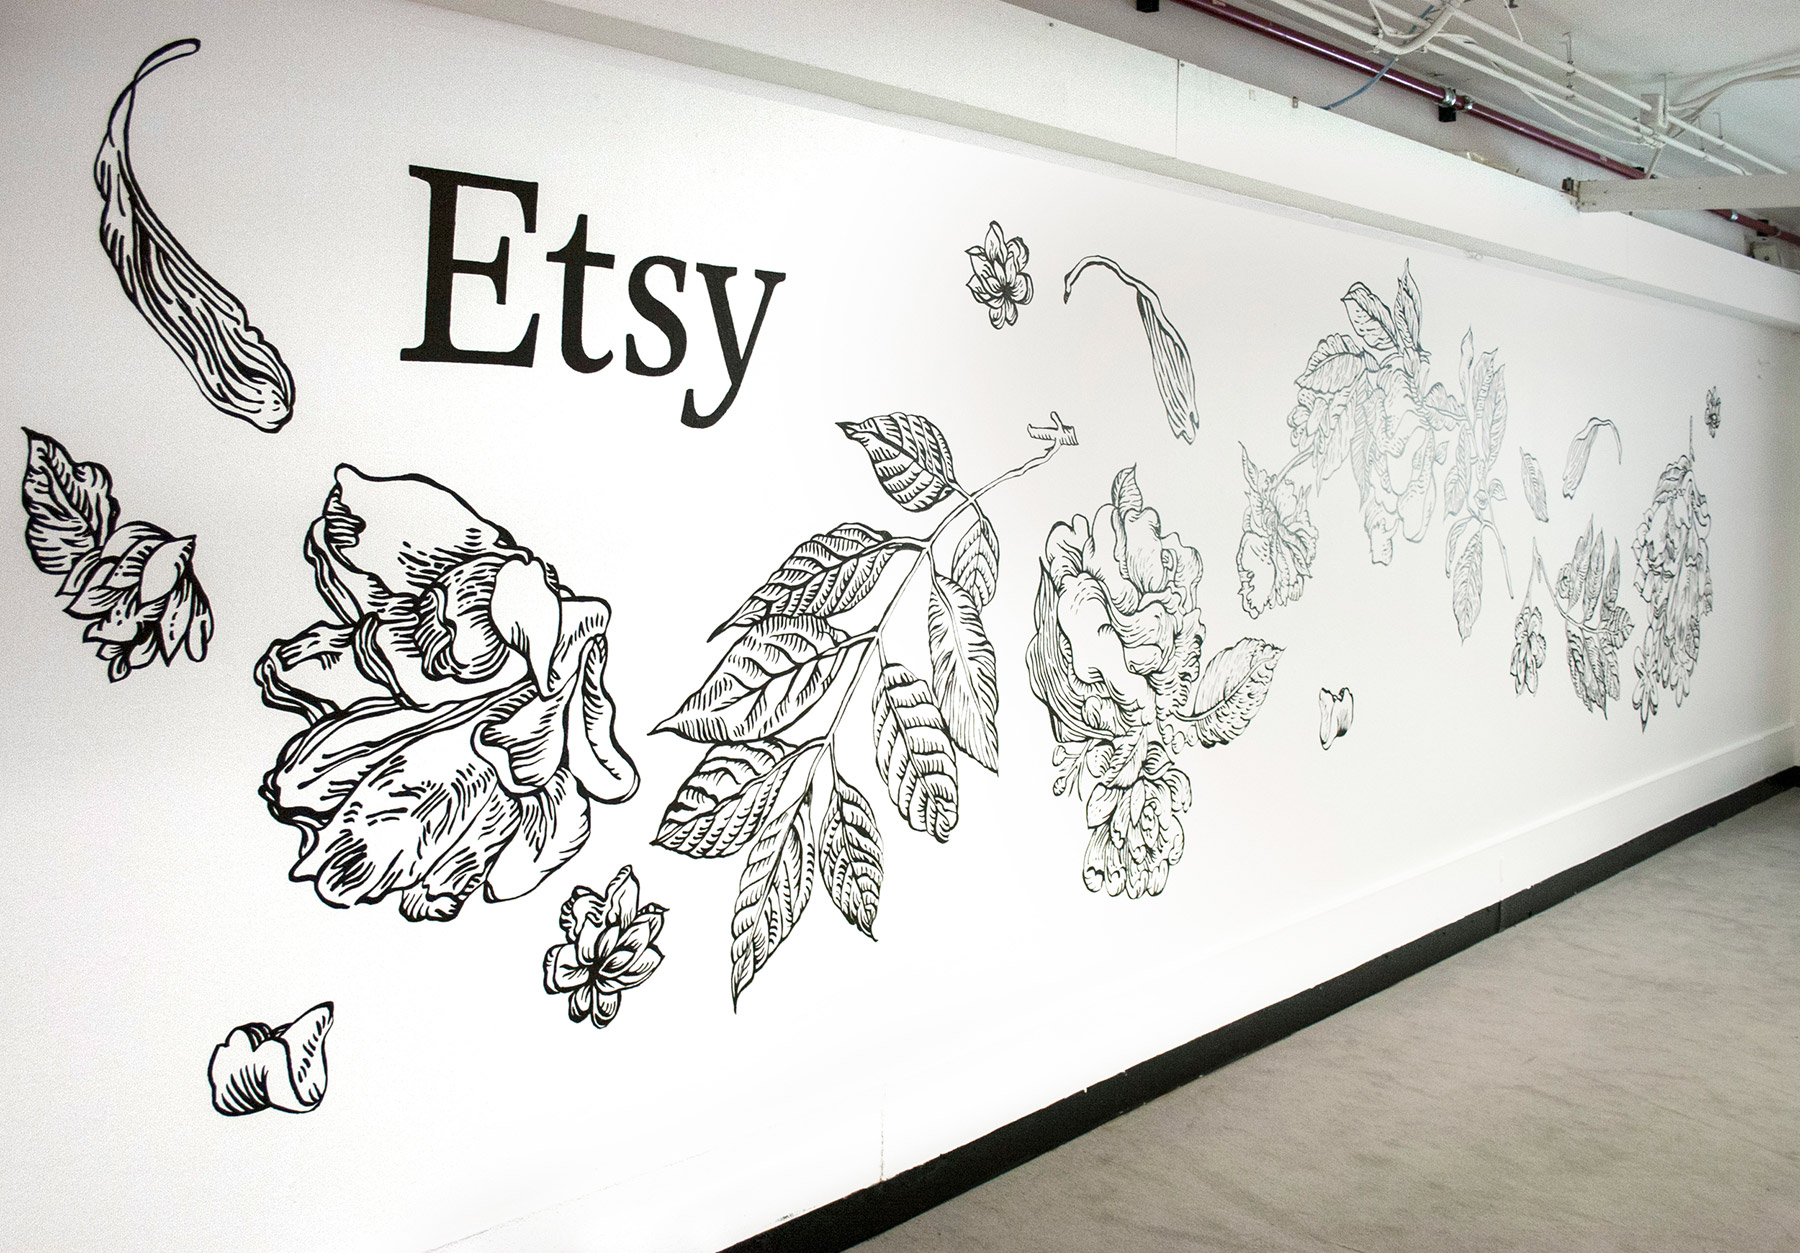 A wall with the Etsy logo and flowers painted on in a black-and-white linear style